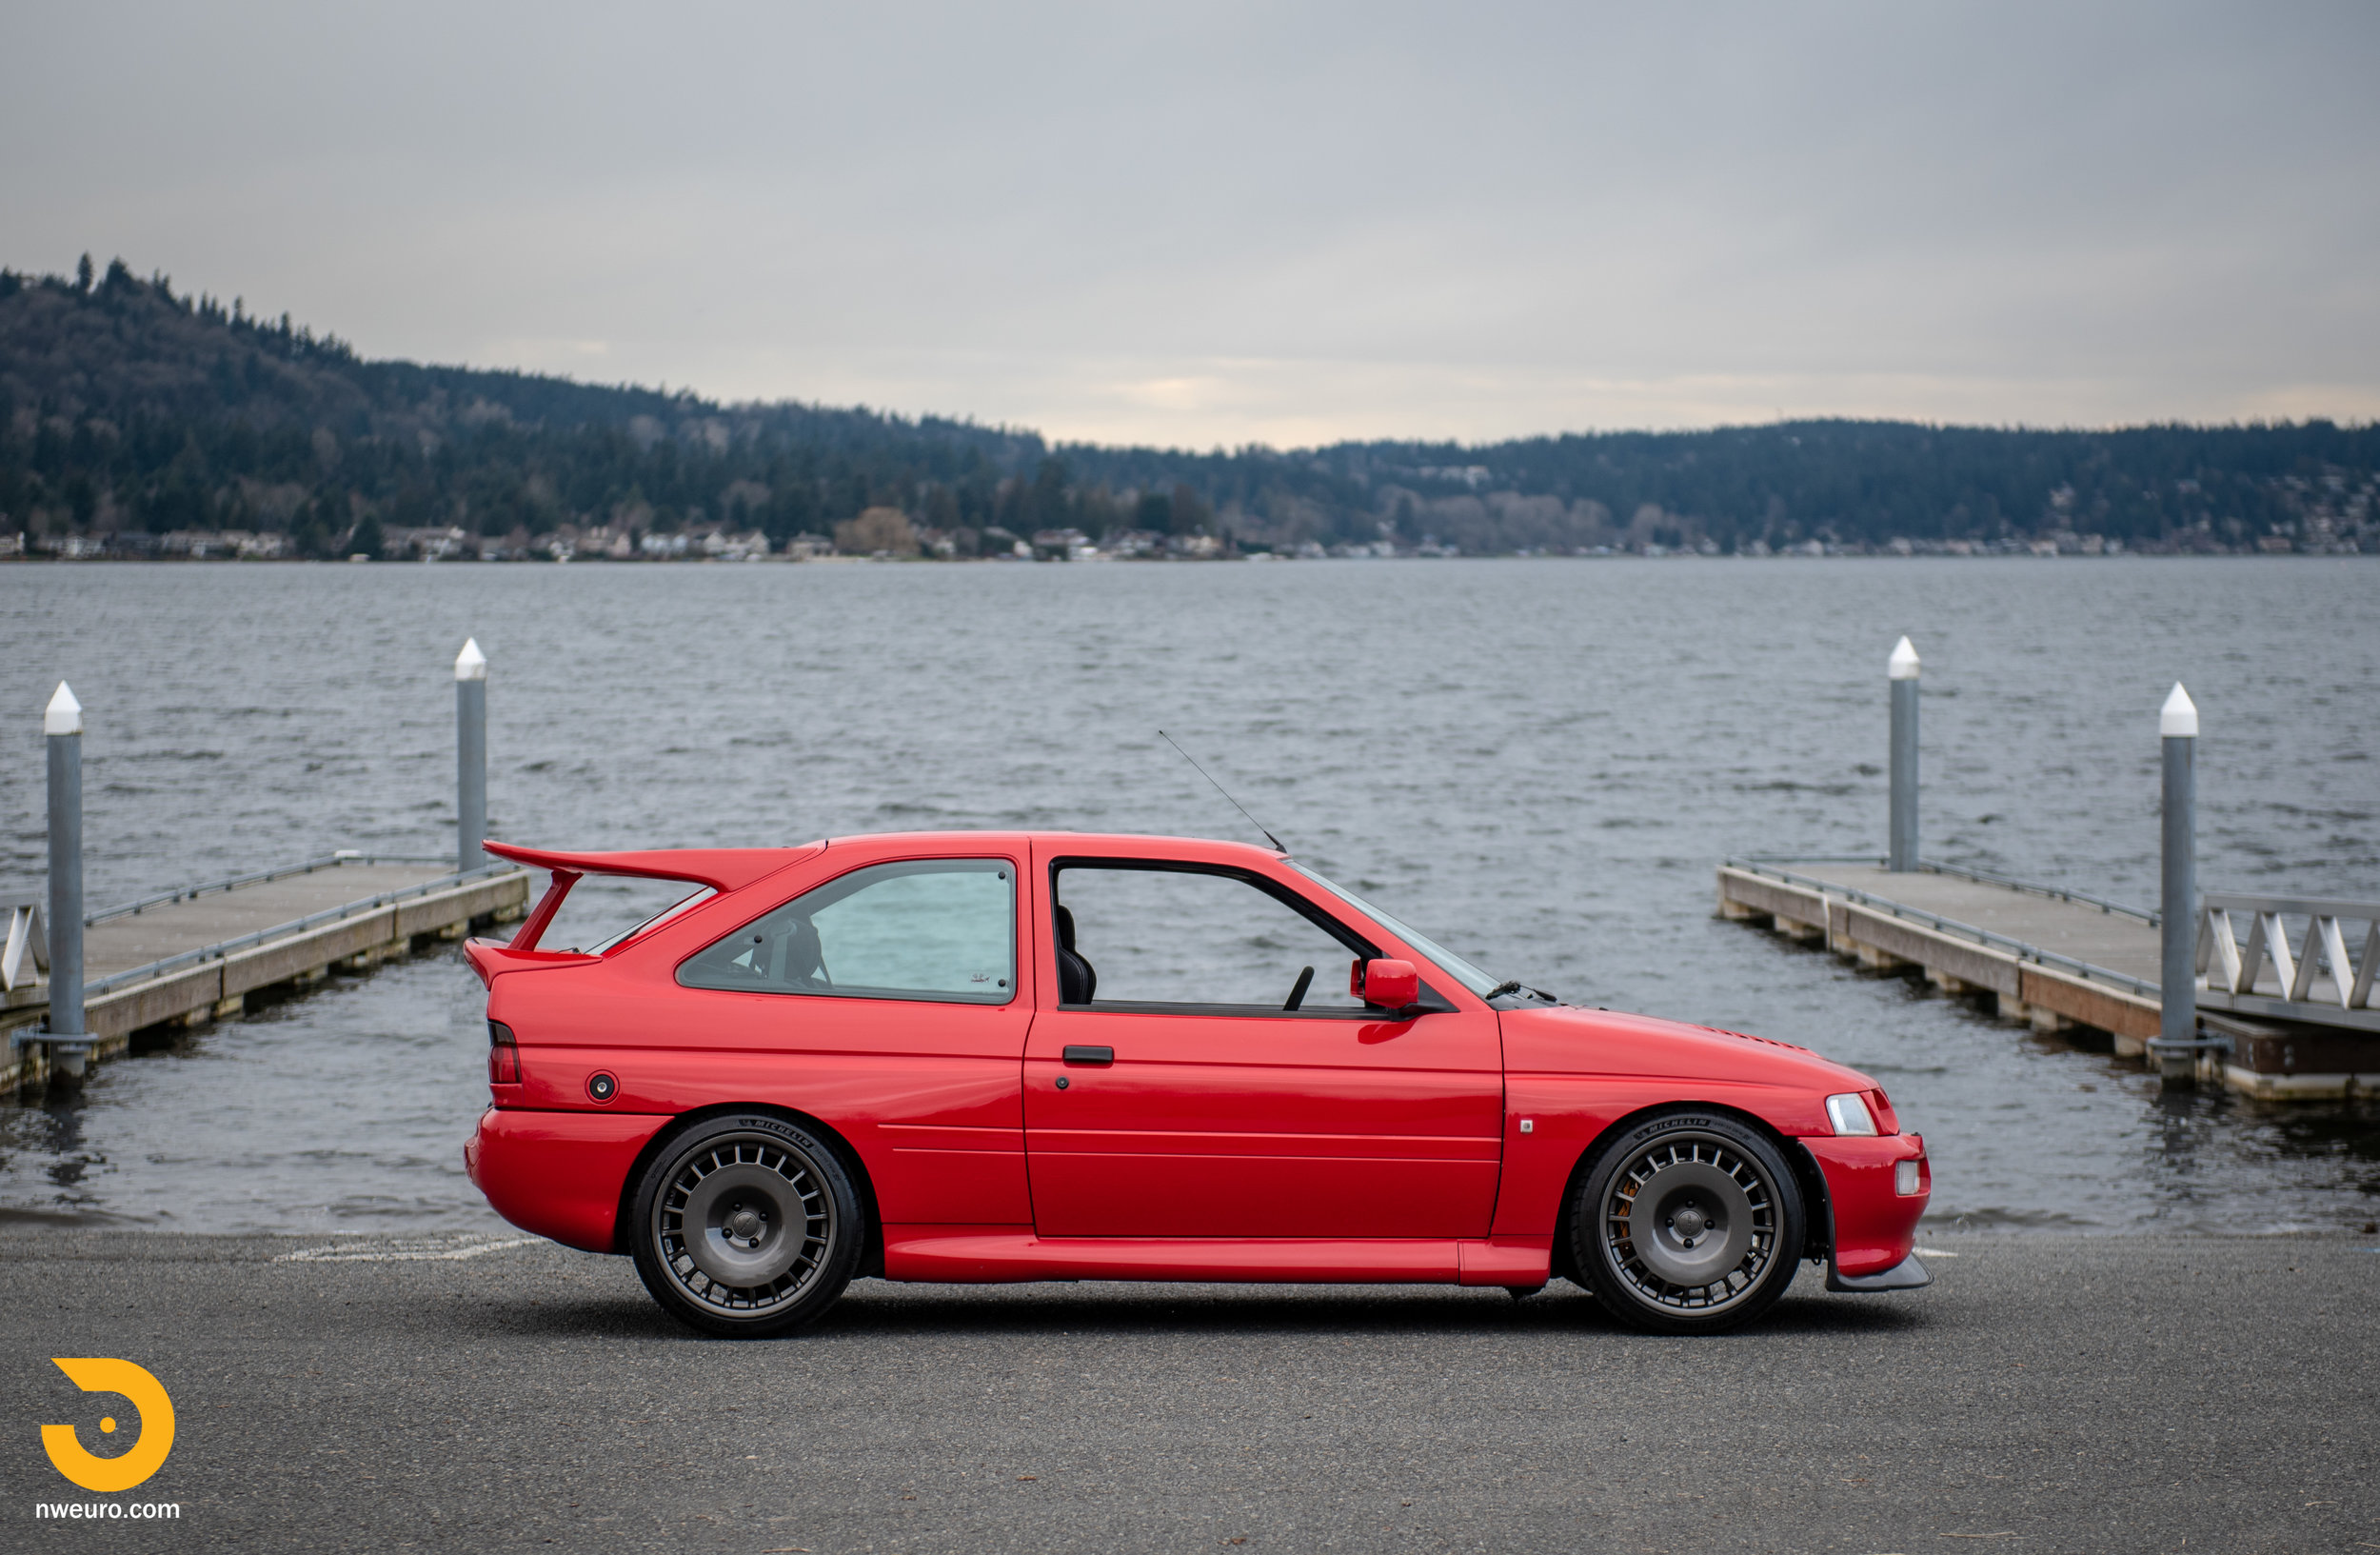 1993 Ford Escort Cosworth RS Red-1.jpg